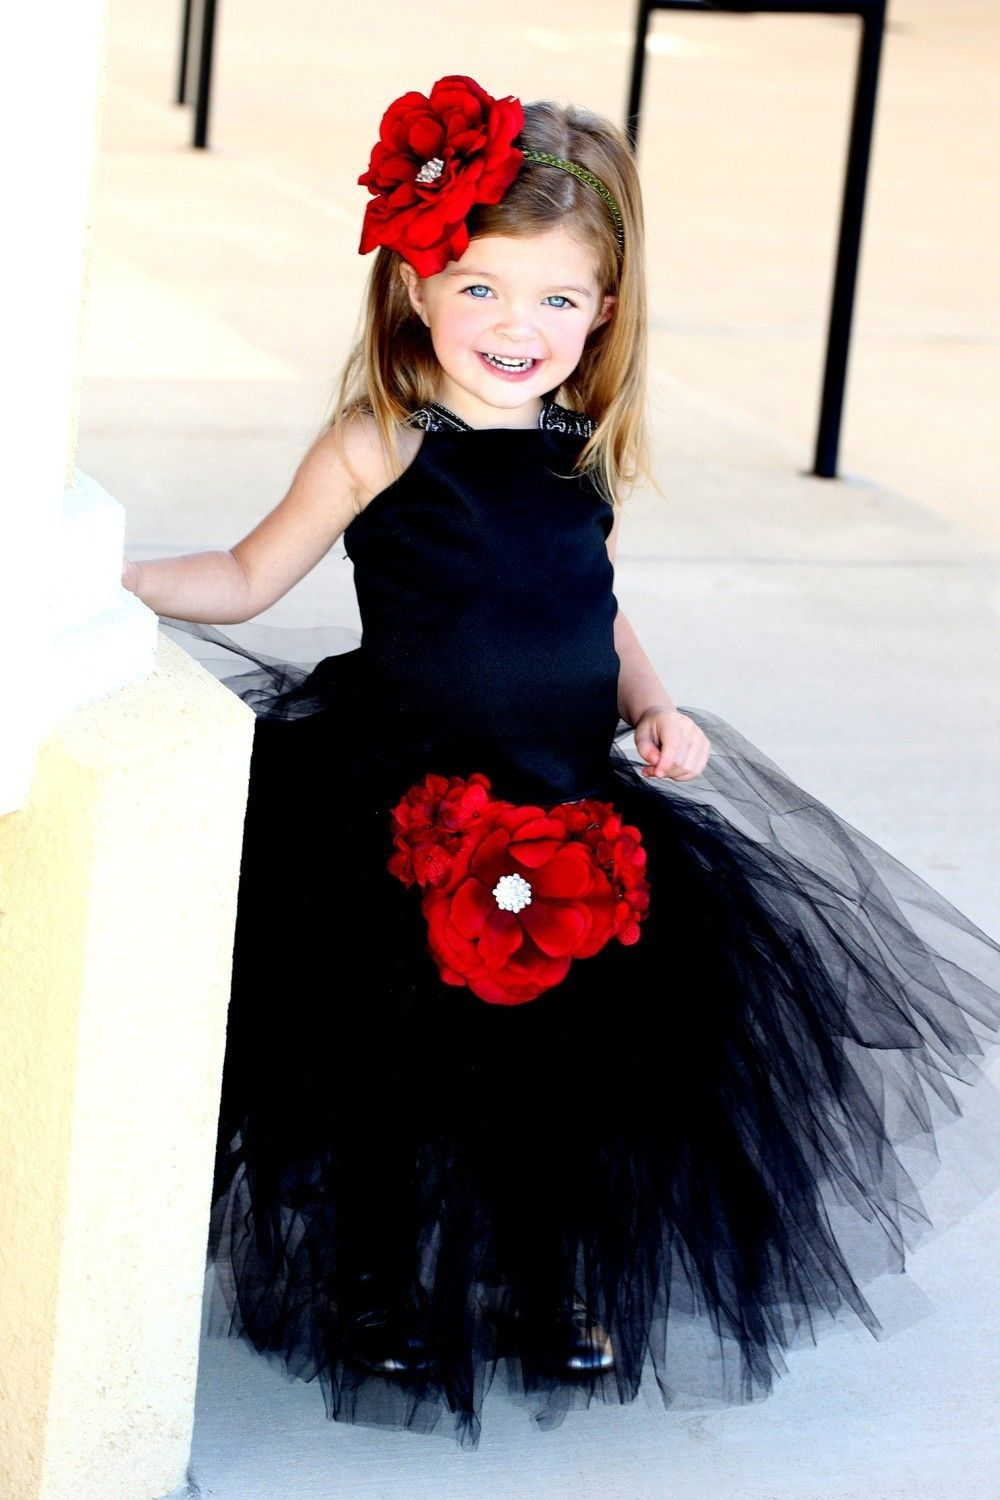 Flower girl dress with lace straps for a wedding